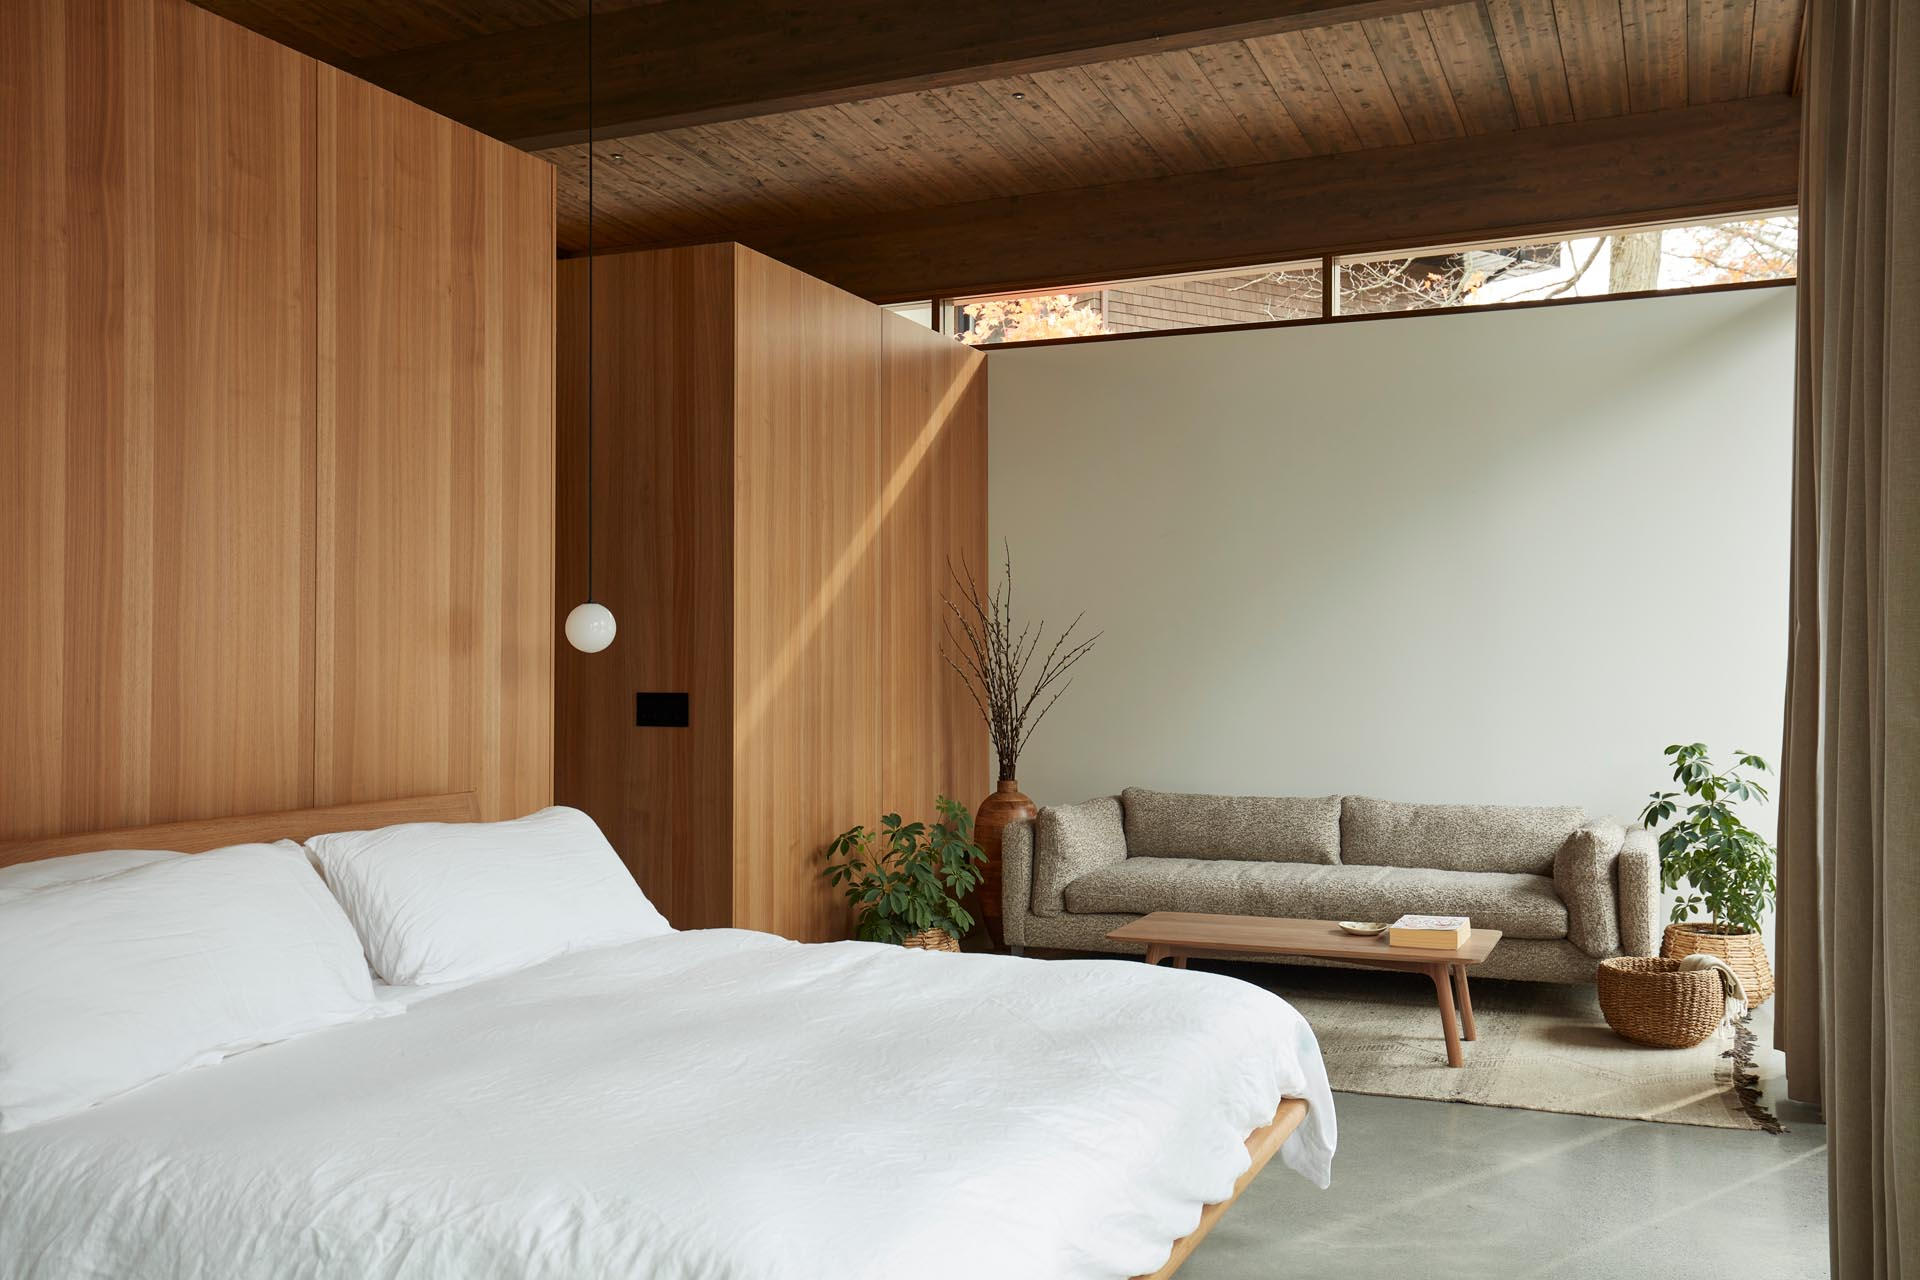 In this modern bedroom, custom wood closets serve as the backdrop for the bed.